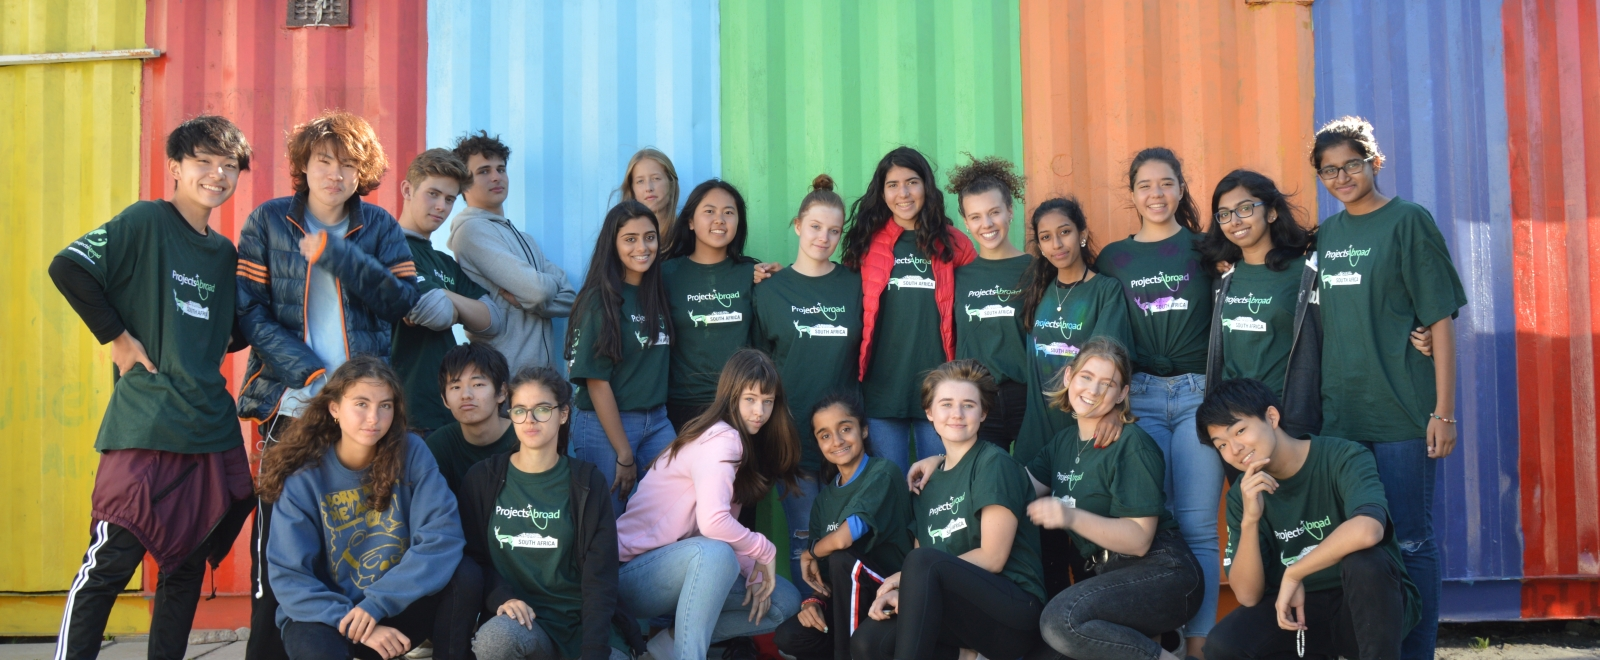 High school students volunteering abroad on Projects Abroad's programmes for 15 year olds.